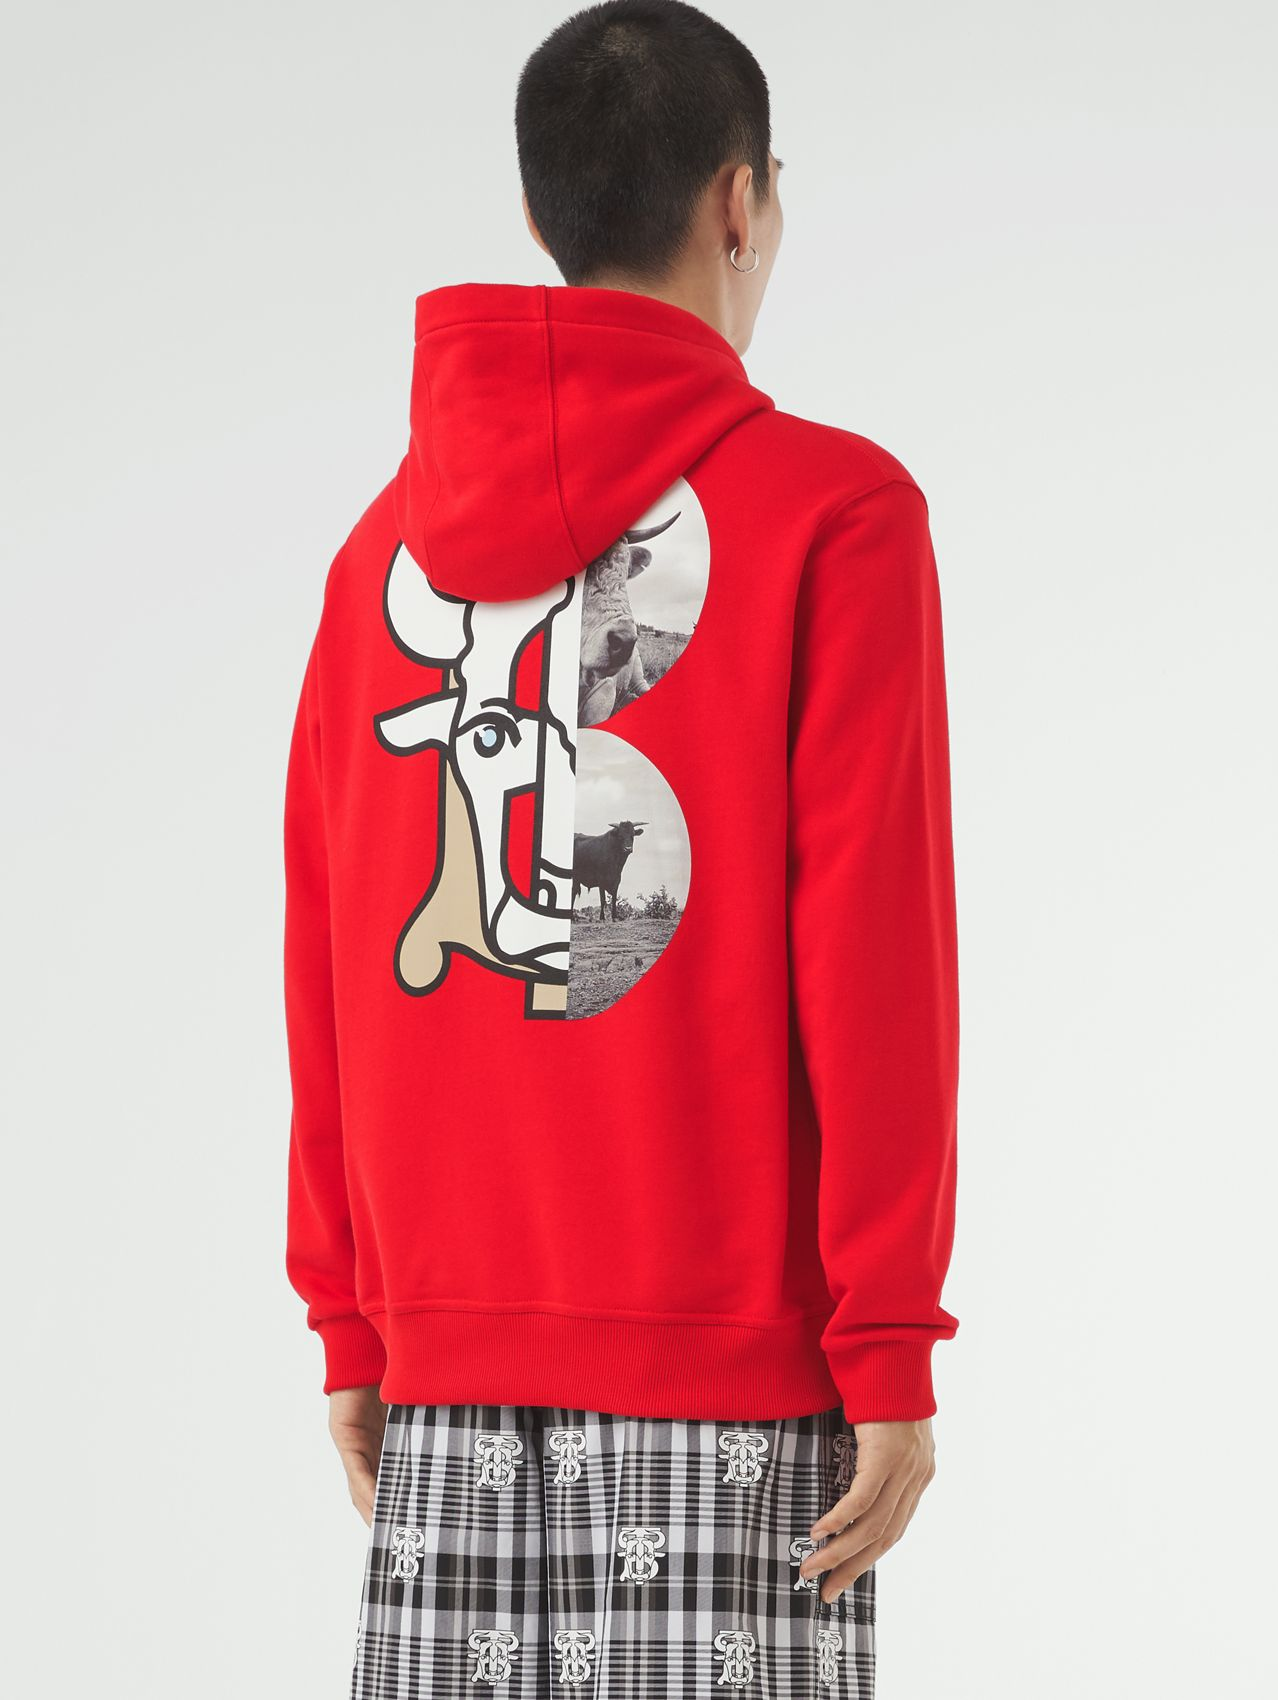 Montage Print Cotton Hoodie – Unisex in Bright Red